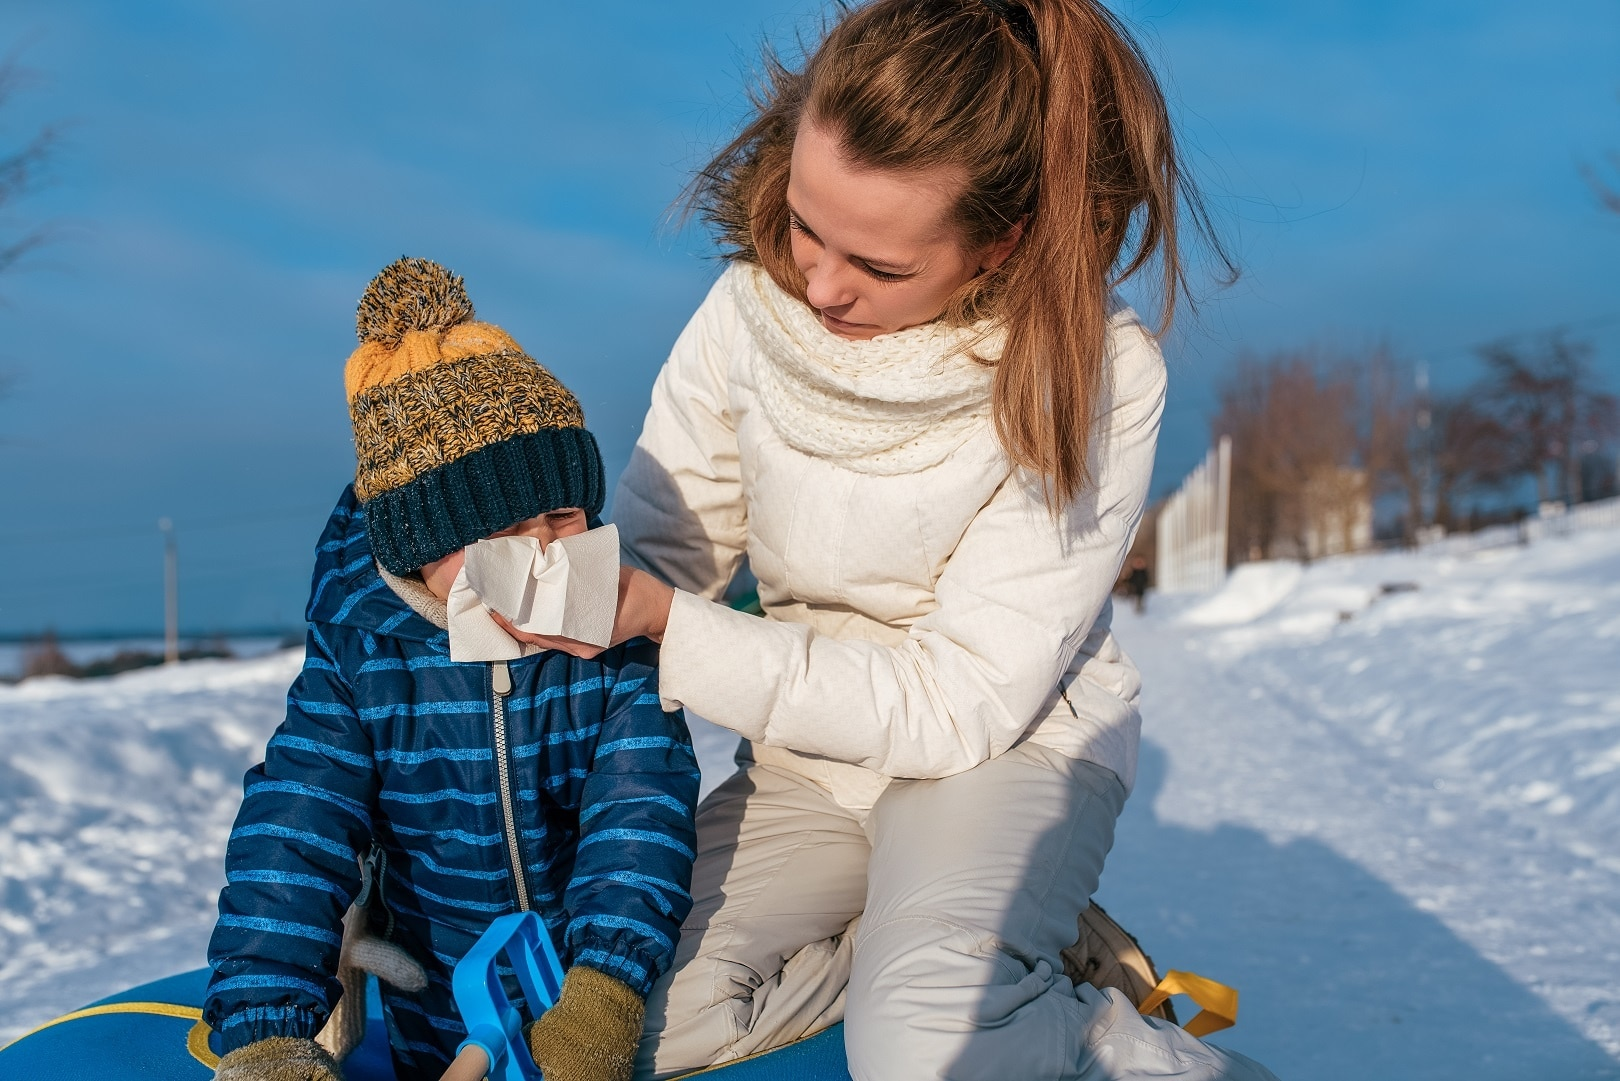 Child's Winter Cough - How To Prepare Yourself For Winter